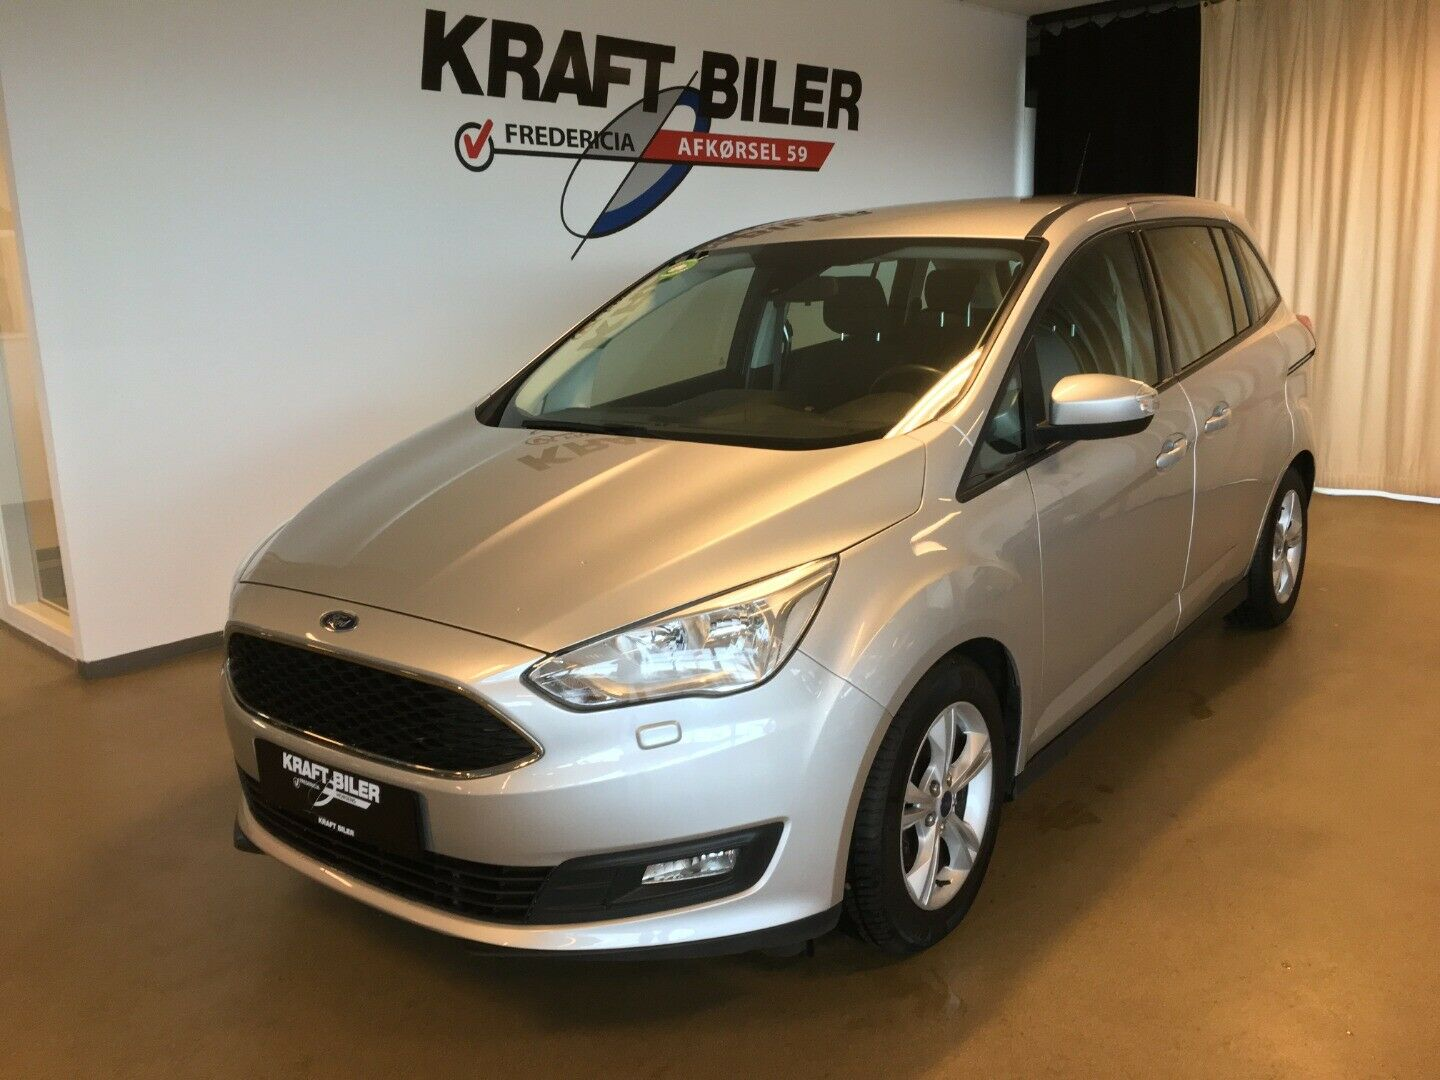 Ford Grand C-MAX 1,5 TDCi 120 Business 5d - 159.900 kr.